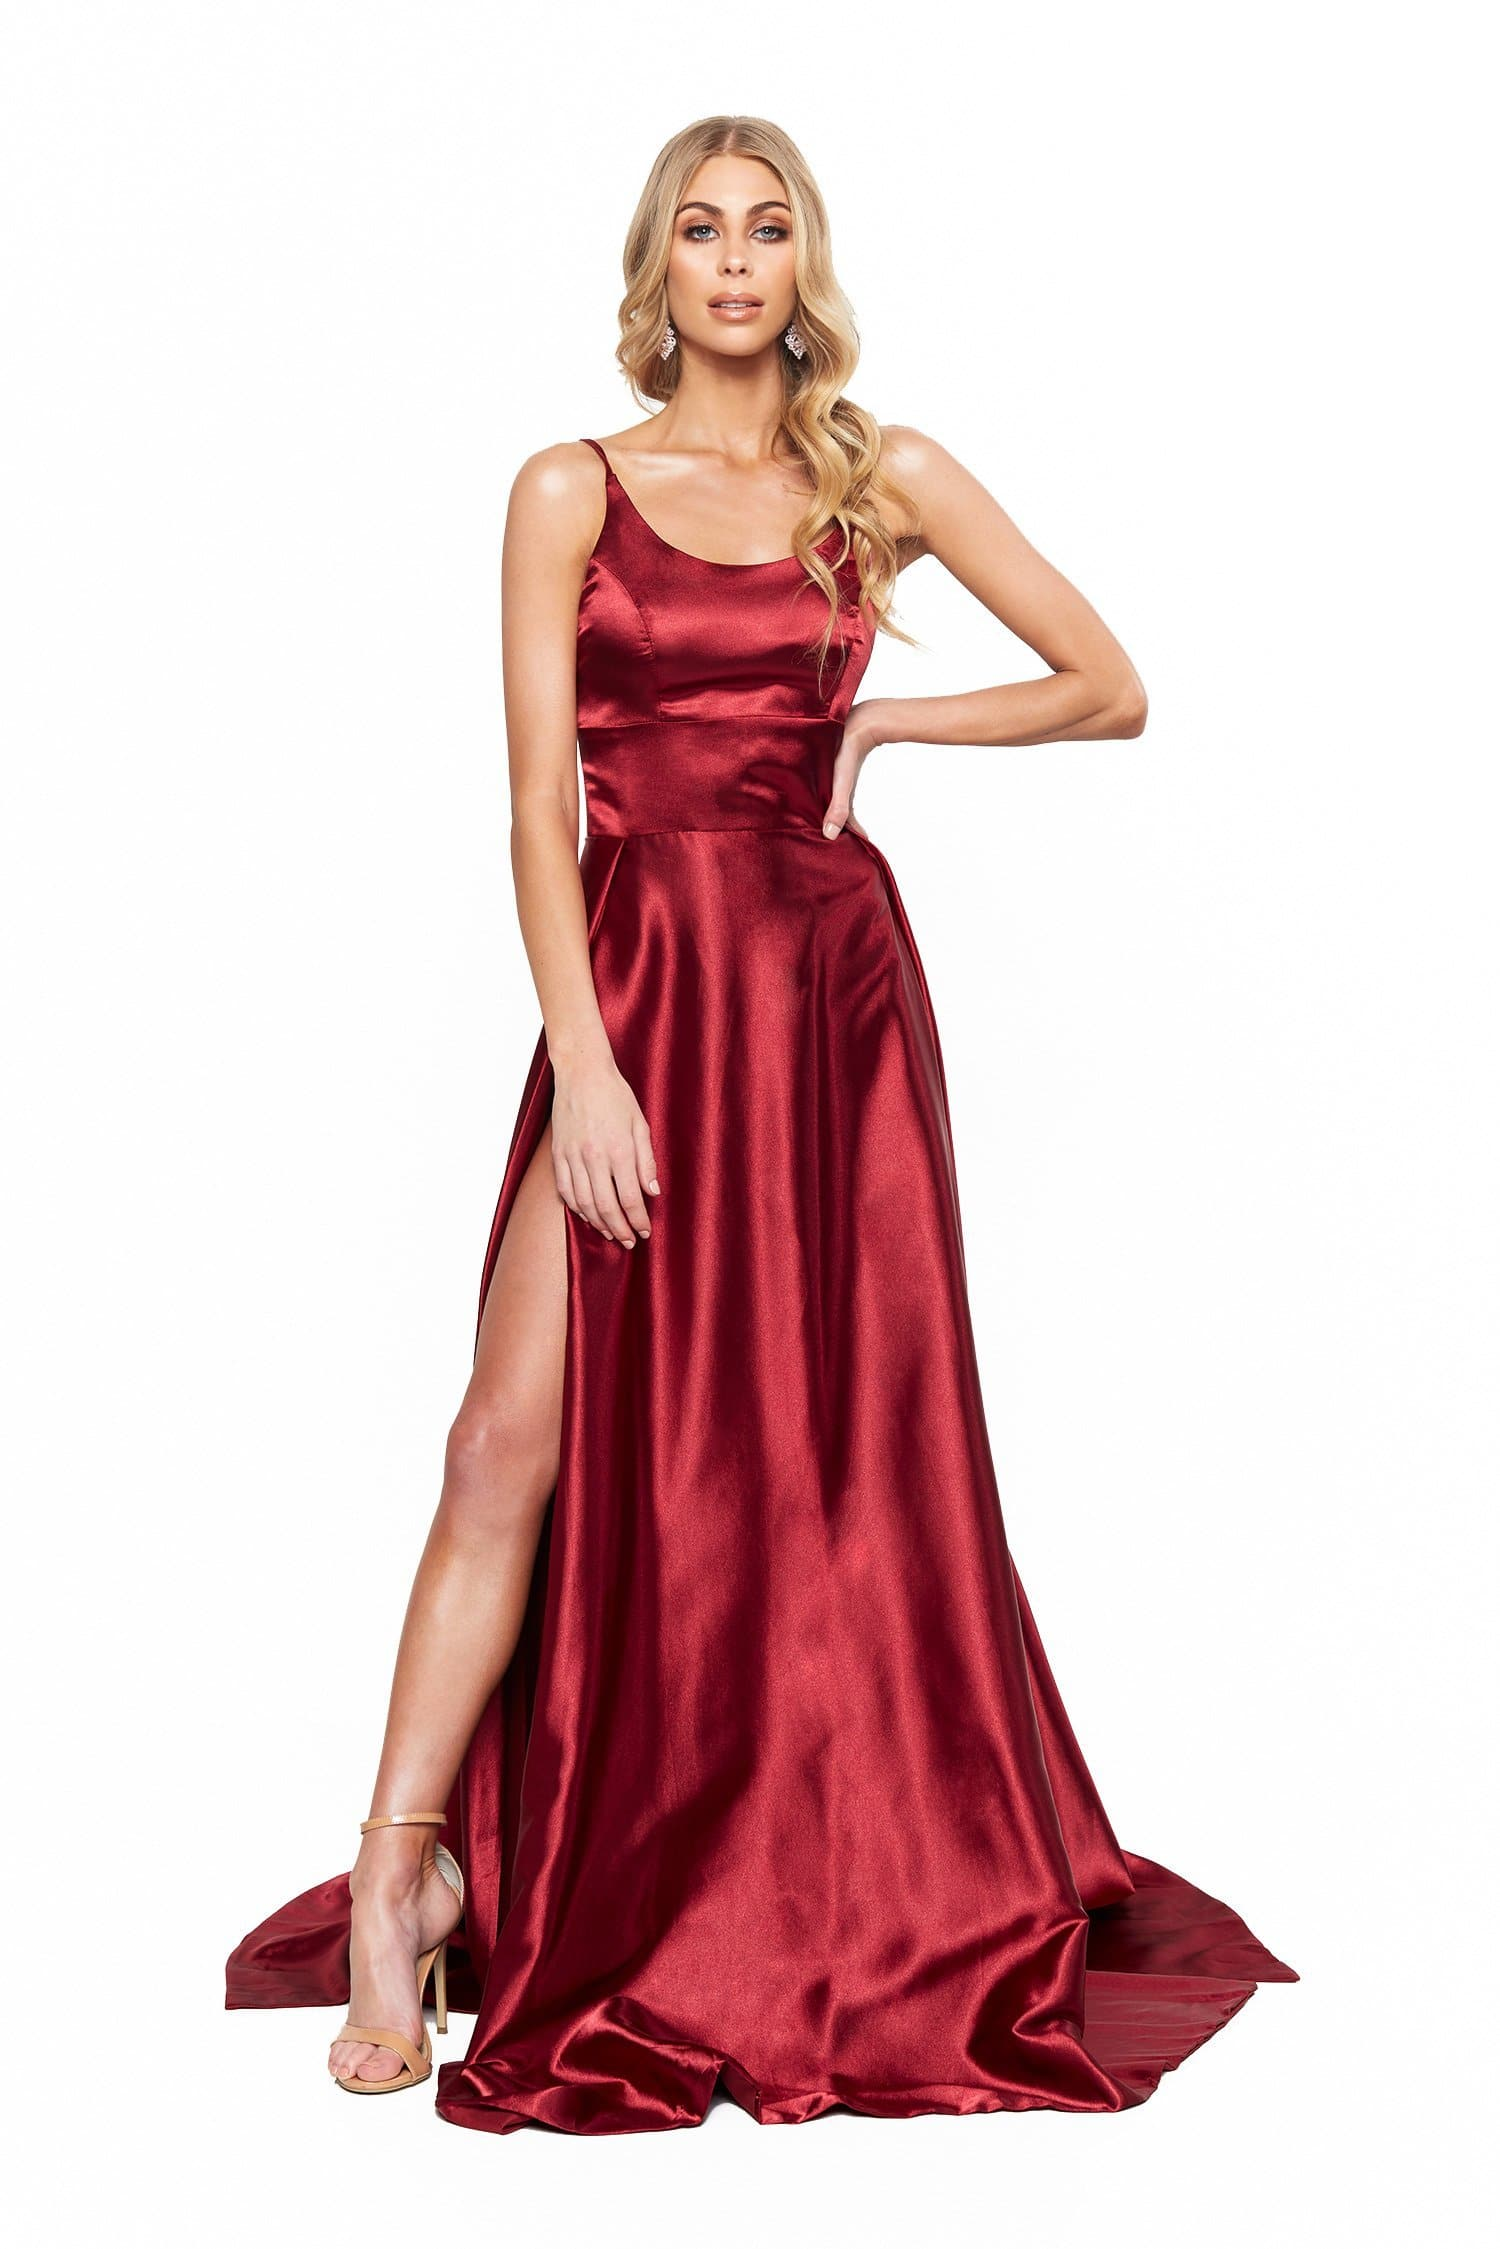 Vanessa Satin Gown - Burgundy Satin Gown With Mermaid Train and Slit